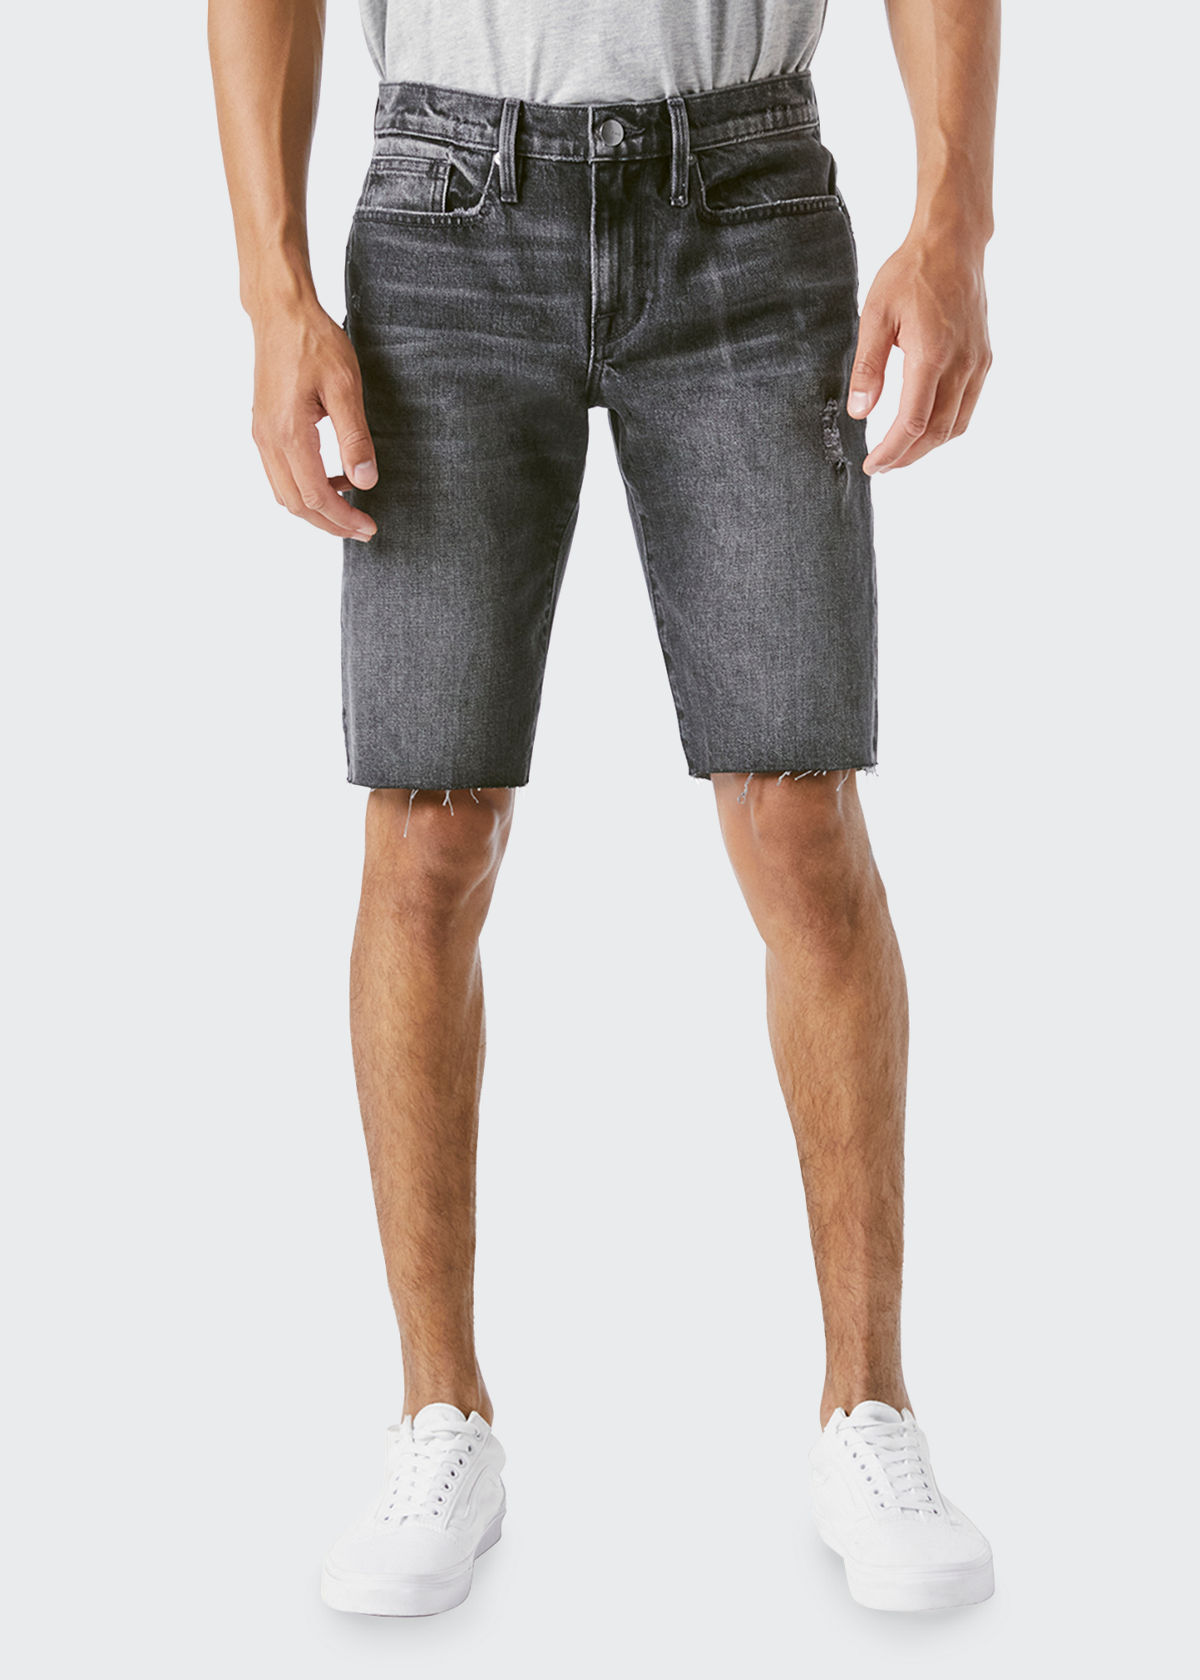 Frame MEN'S L'HOMME FADED CUTOFF SHORTS